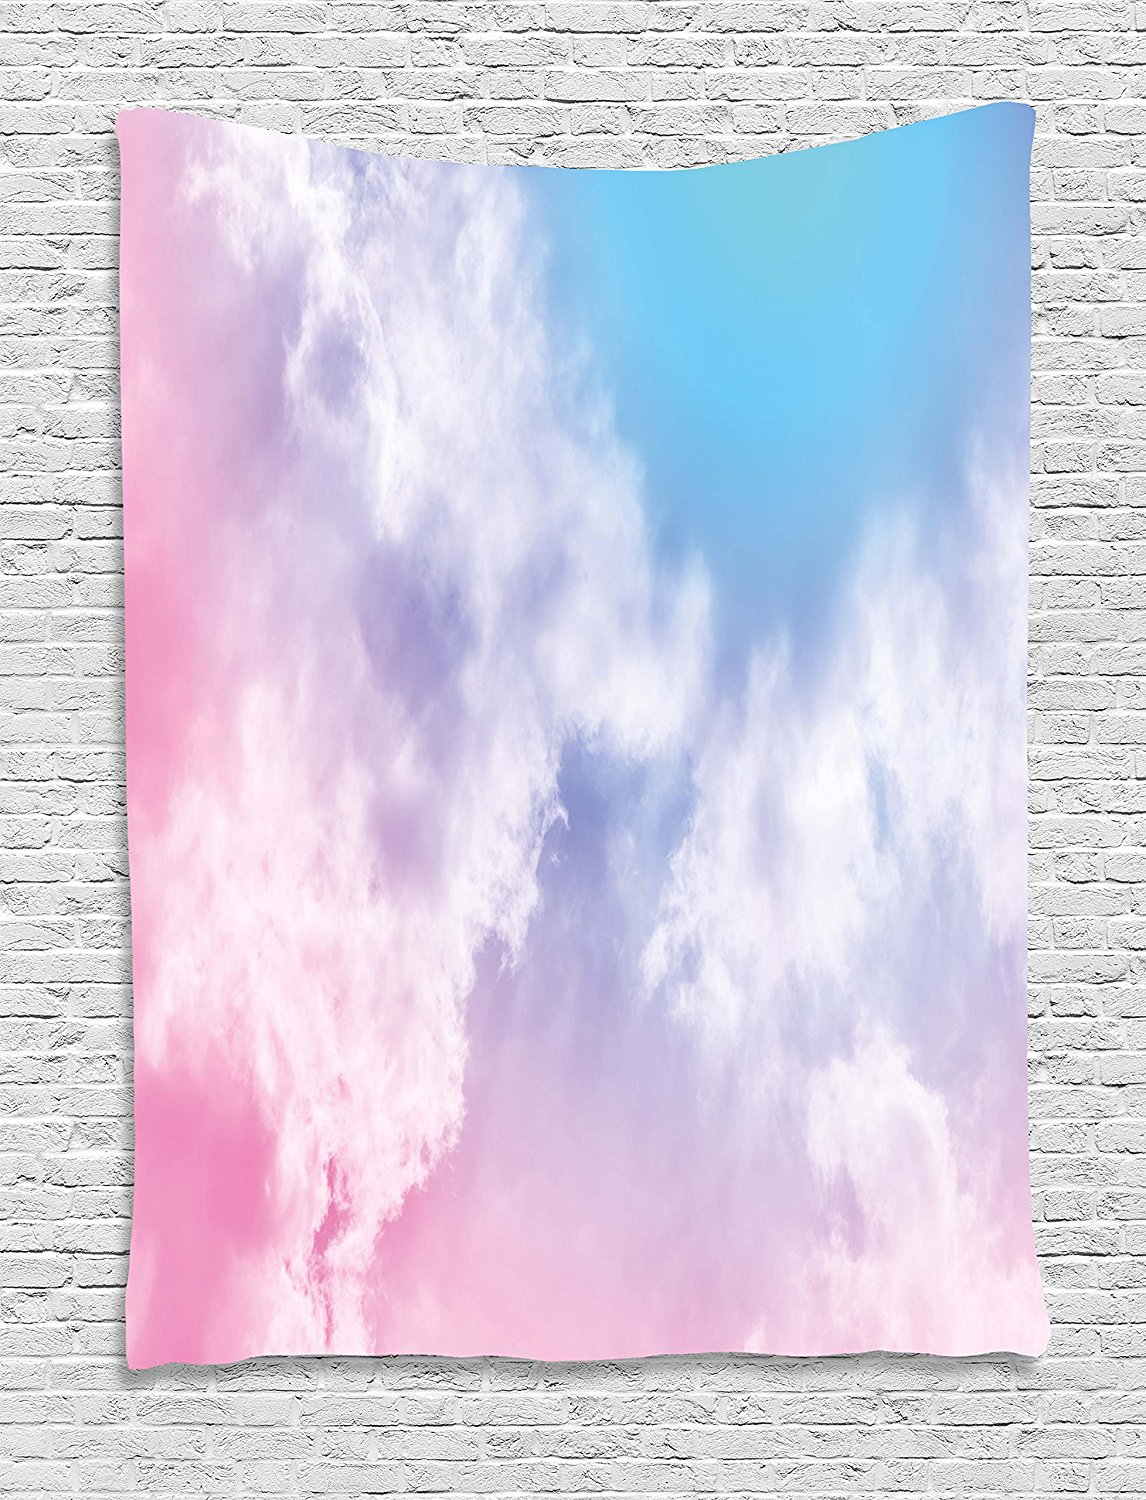 Pastel Tapestry Fantasy Sky Abstraction Smoky Clouds Foggy Mystical Ethereal Composition